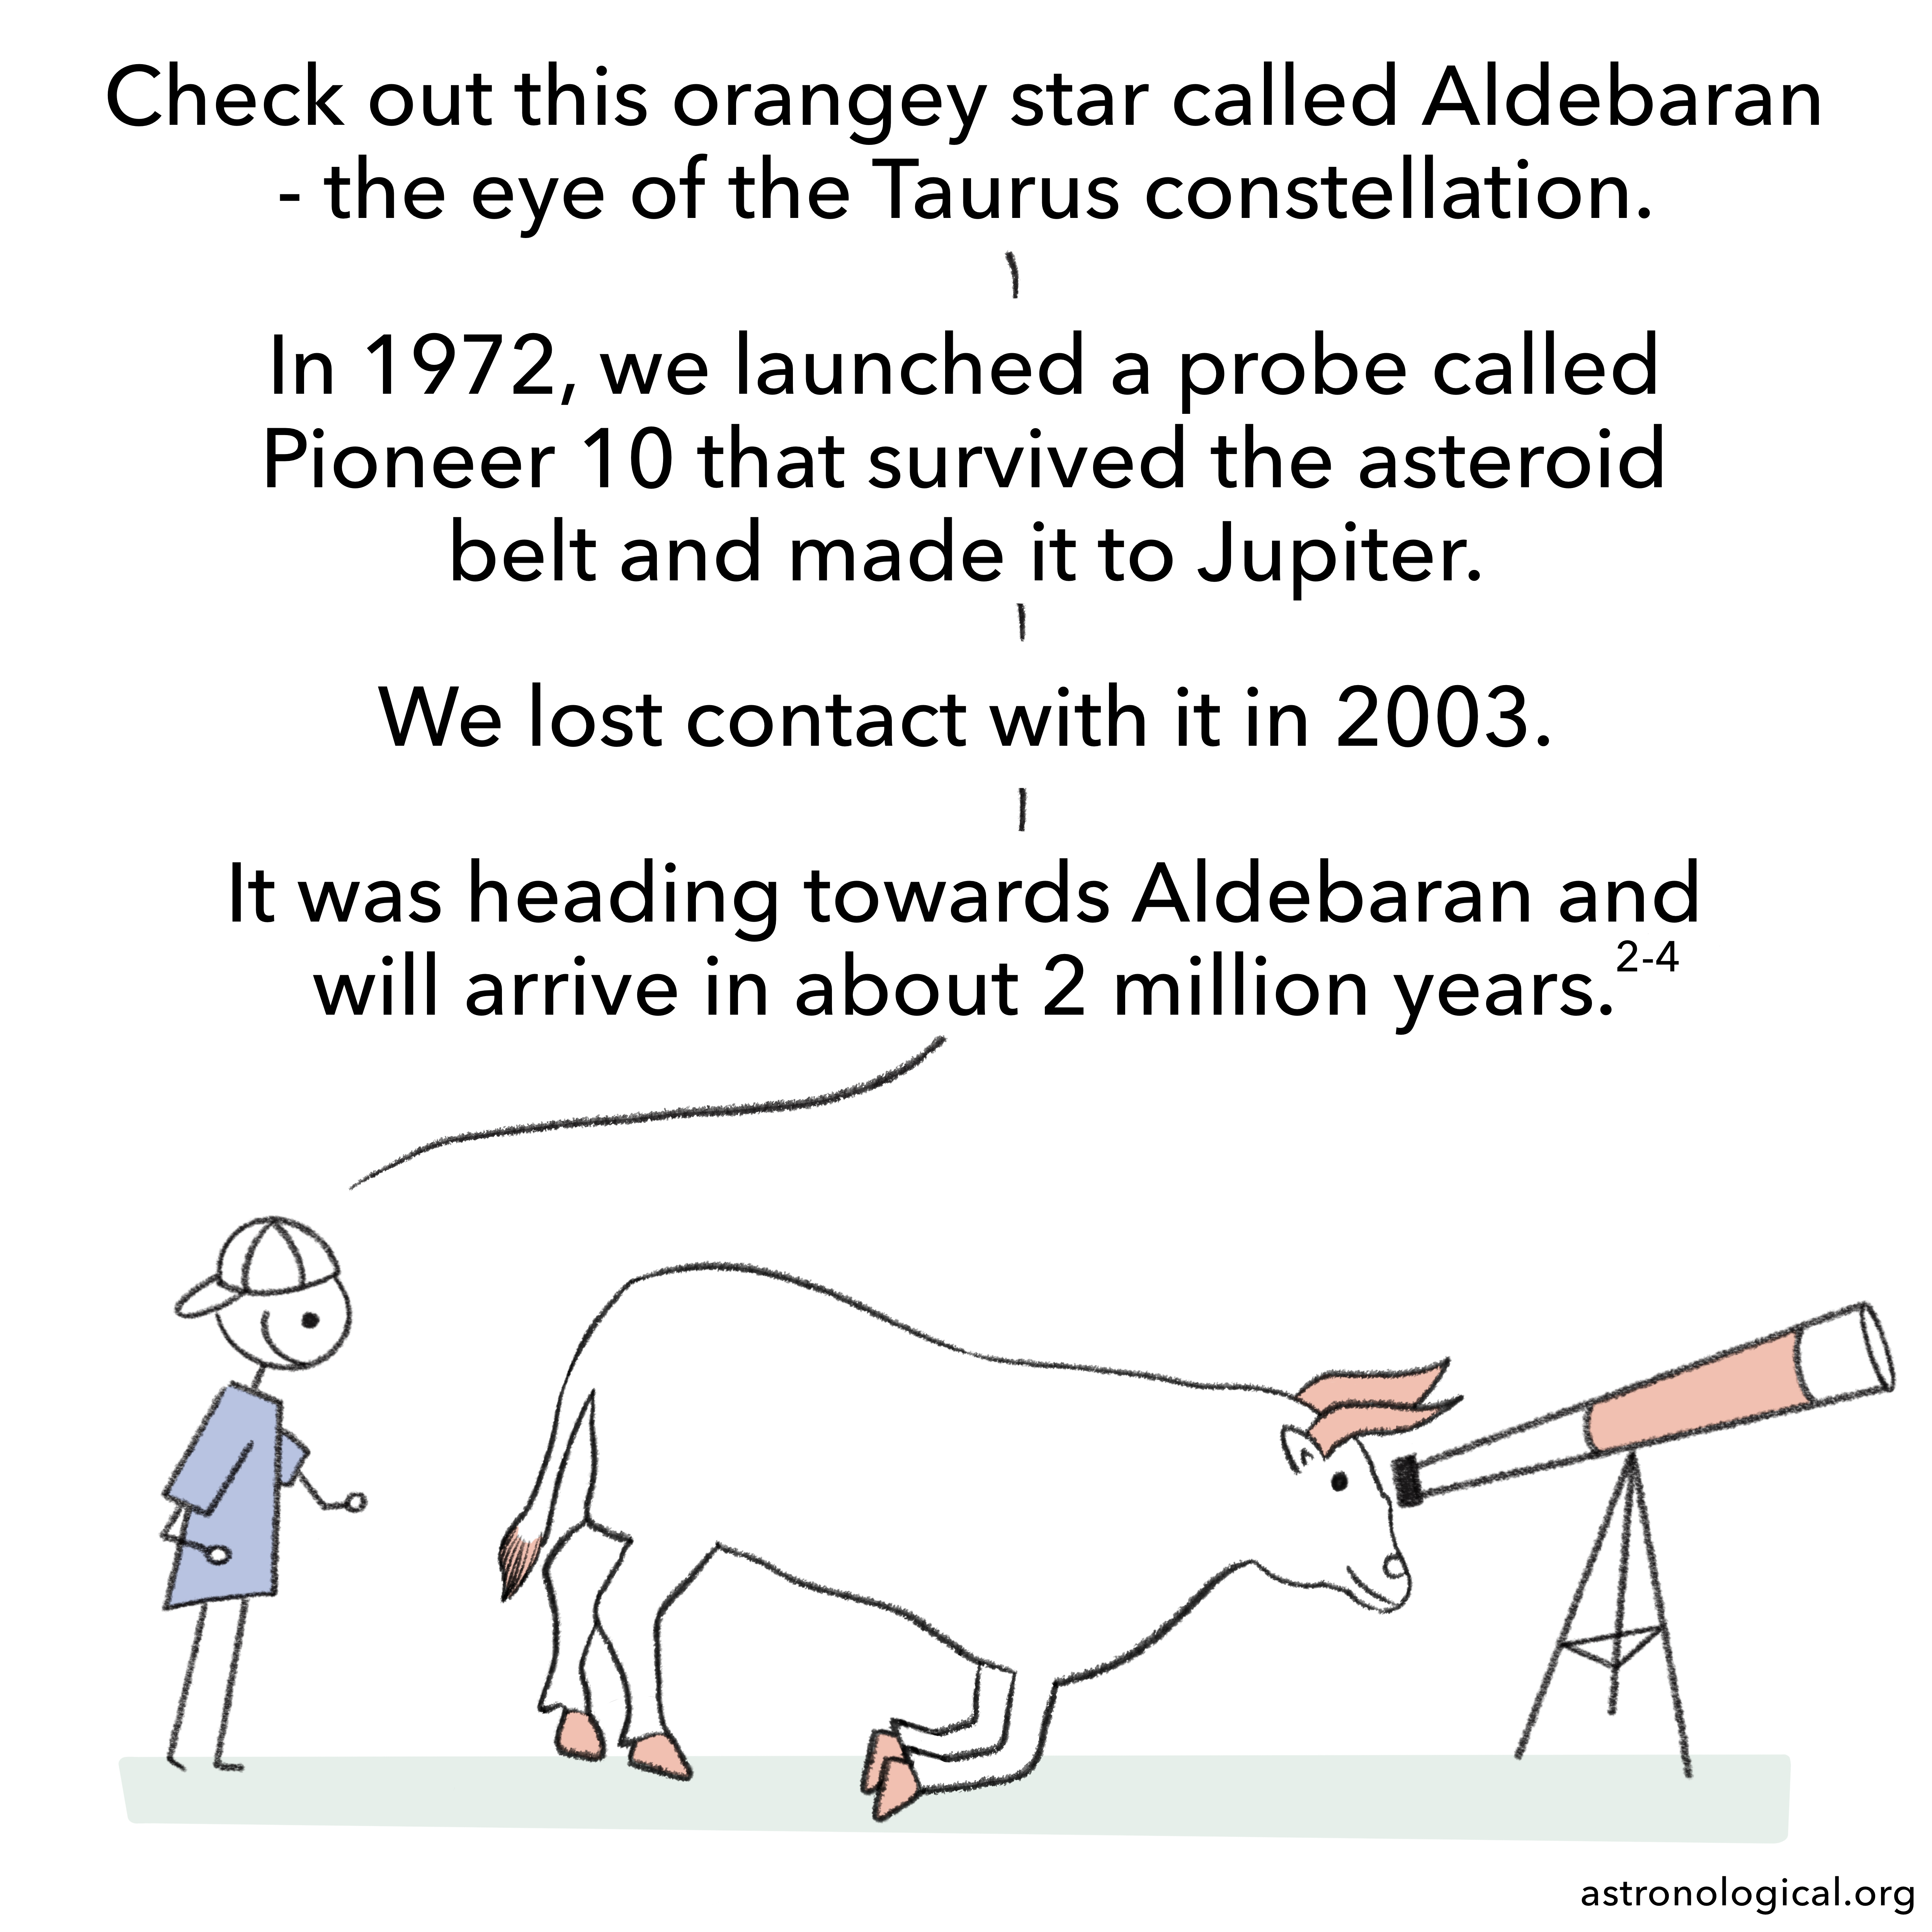 They swap positions and now the bull is looking through the telescope. The guy says enthusiastically: Check out this orangey star called Aldebaran - the eye of the Taurus constellation. In 1972, we launched a probe called Pioneer 10 that survived the asteroid belt and made it to Jupiter. We lost contact with it in 2003. It was heading towards Aldebaran and will arrive in about 2 million years.